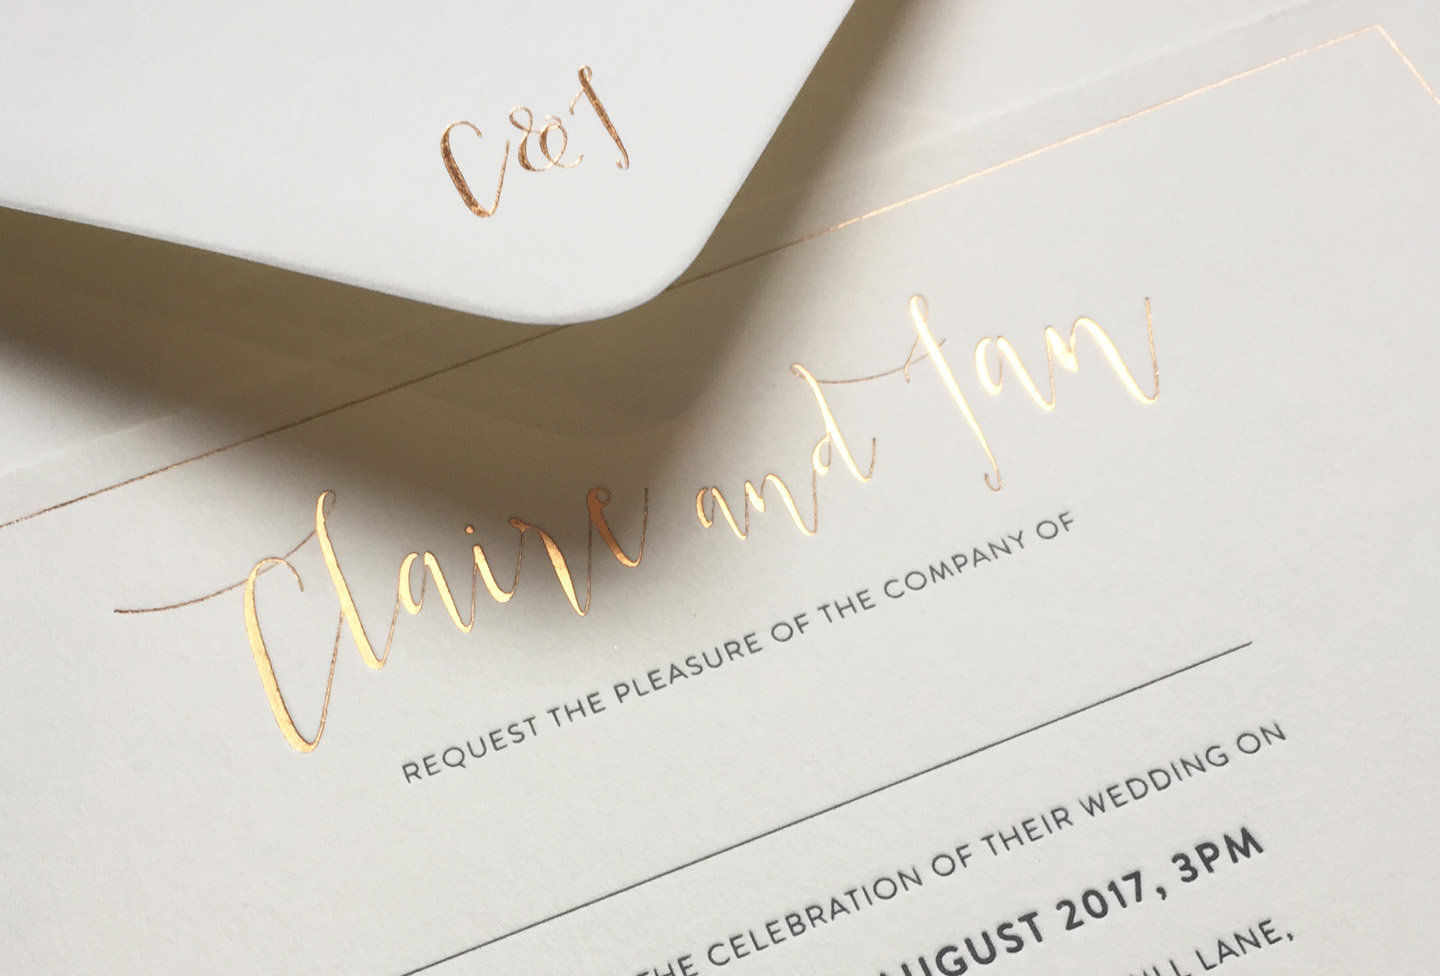 Gold Foil Wedding Invitations | Hottest Luxury Wedding Stationery Trends 2019 | Foil Invite Company Blog